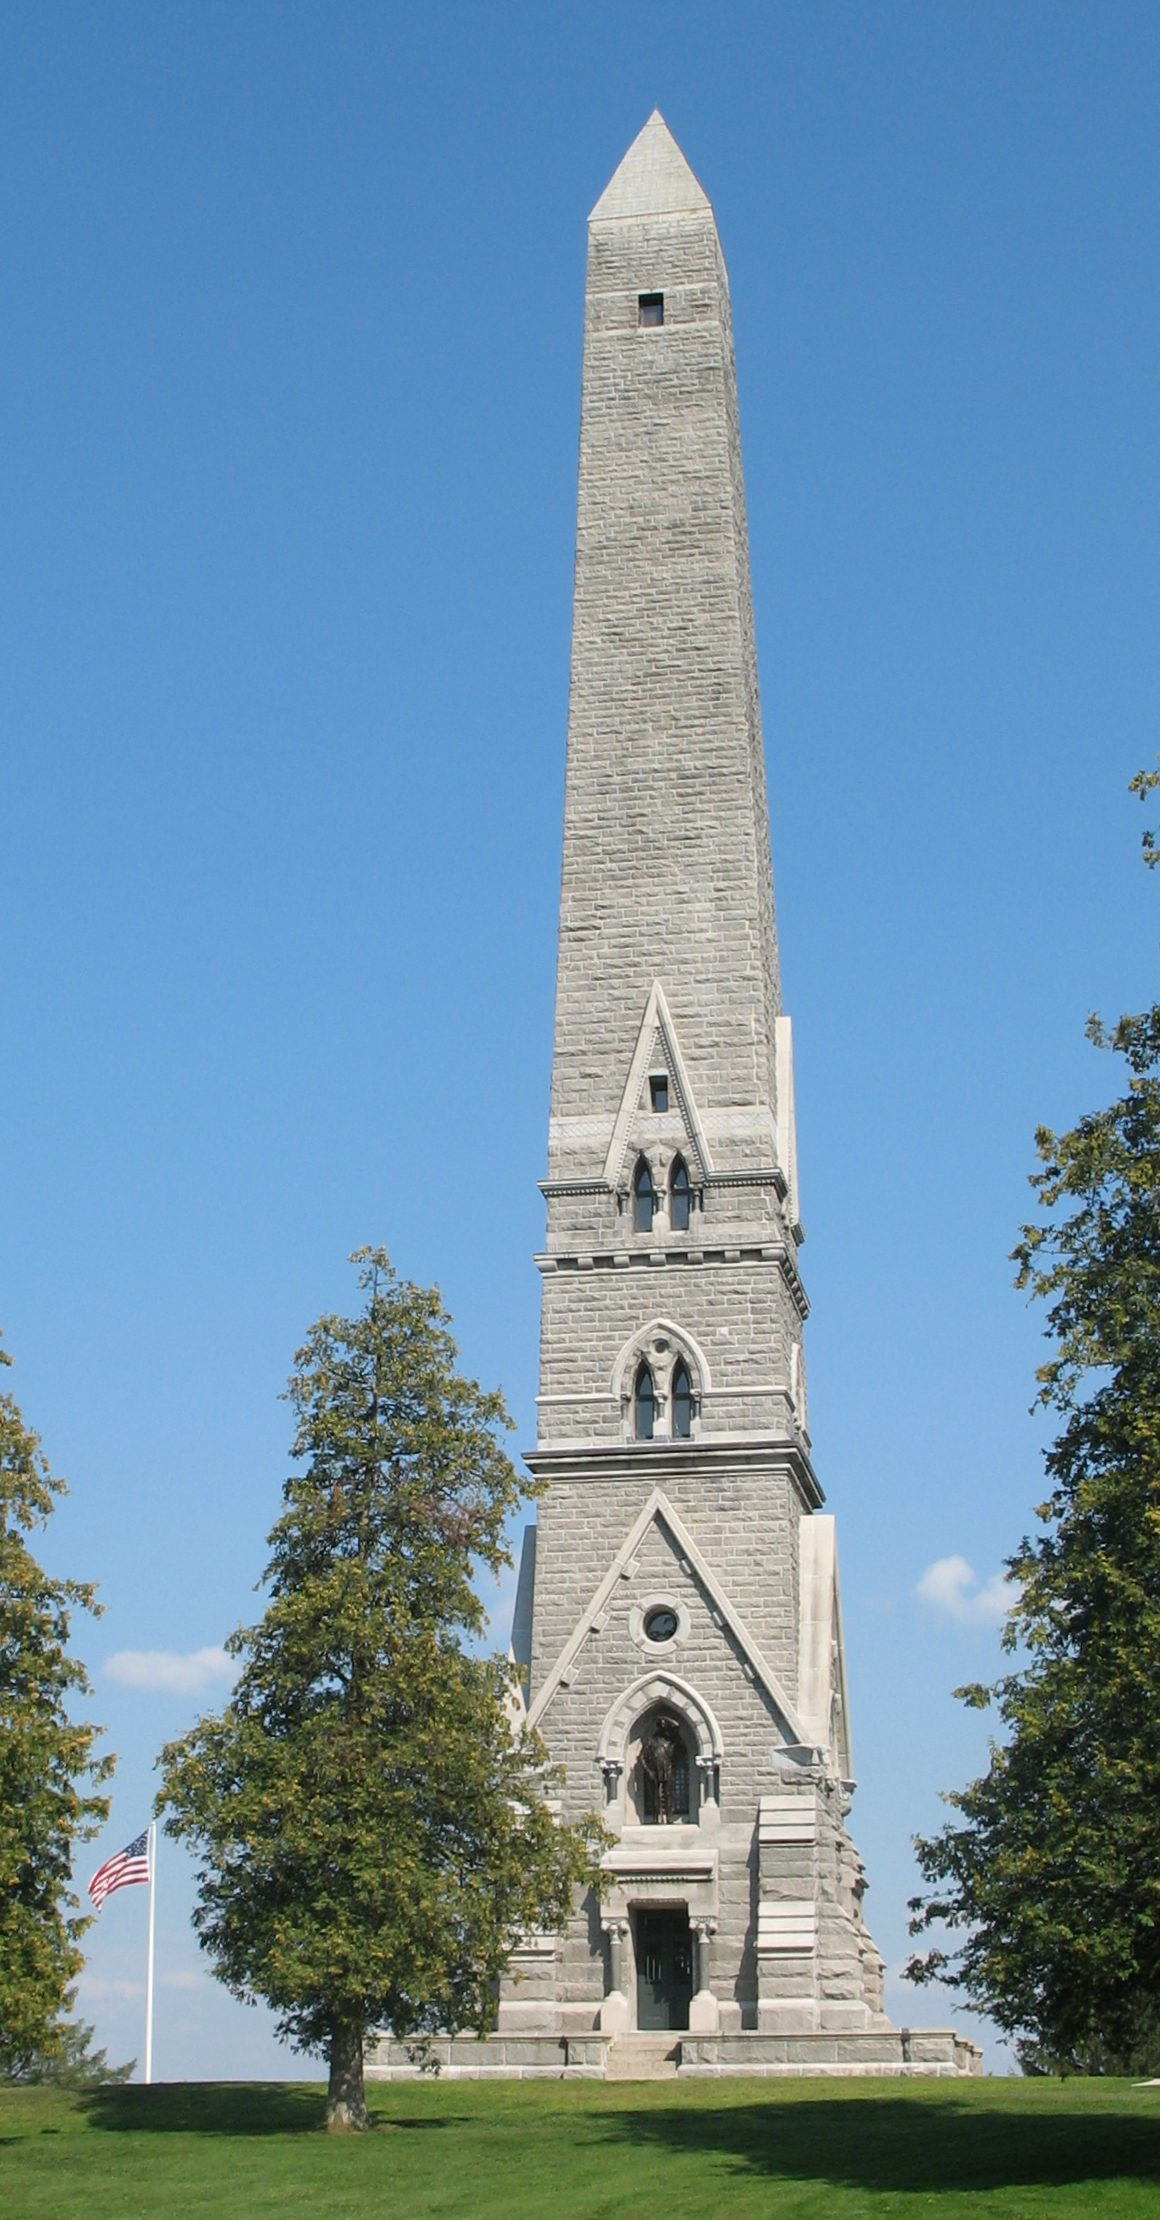 Saratoga Monument in Saratoga National Historical Park at Victory, New York, United States. Photo taken on August 18, 2006.